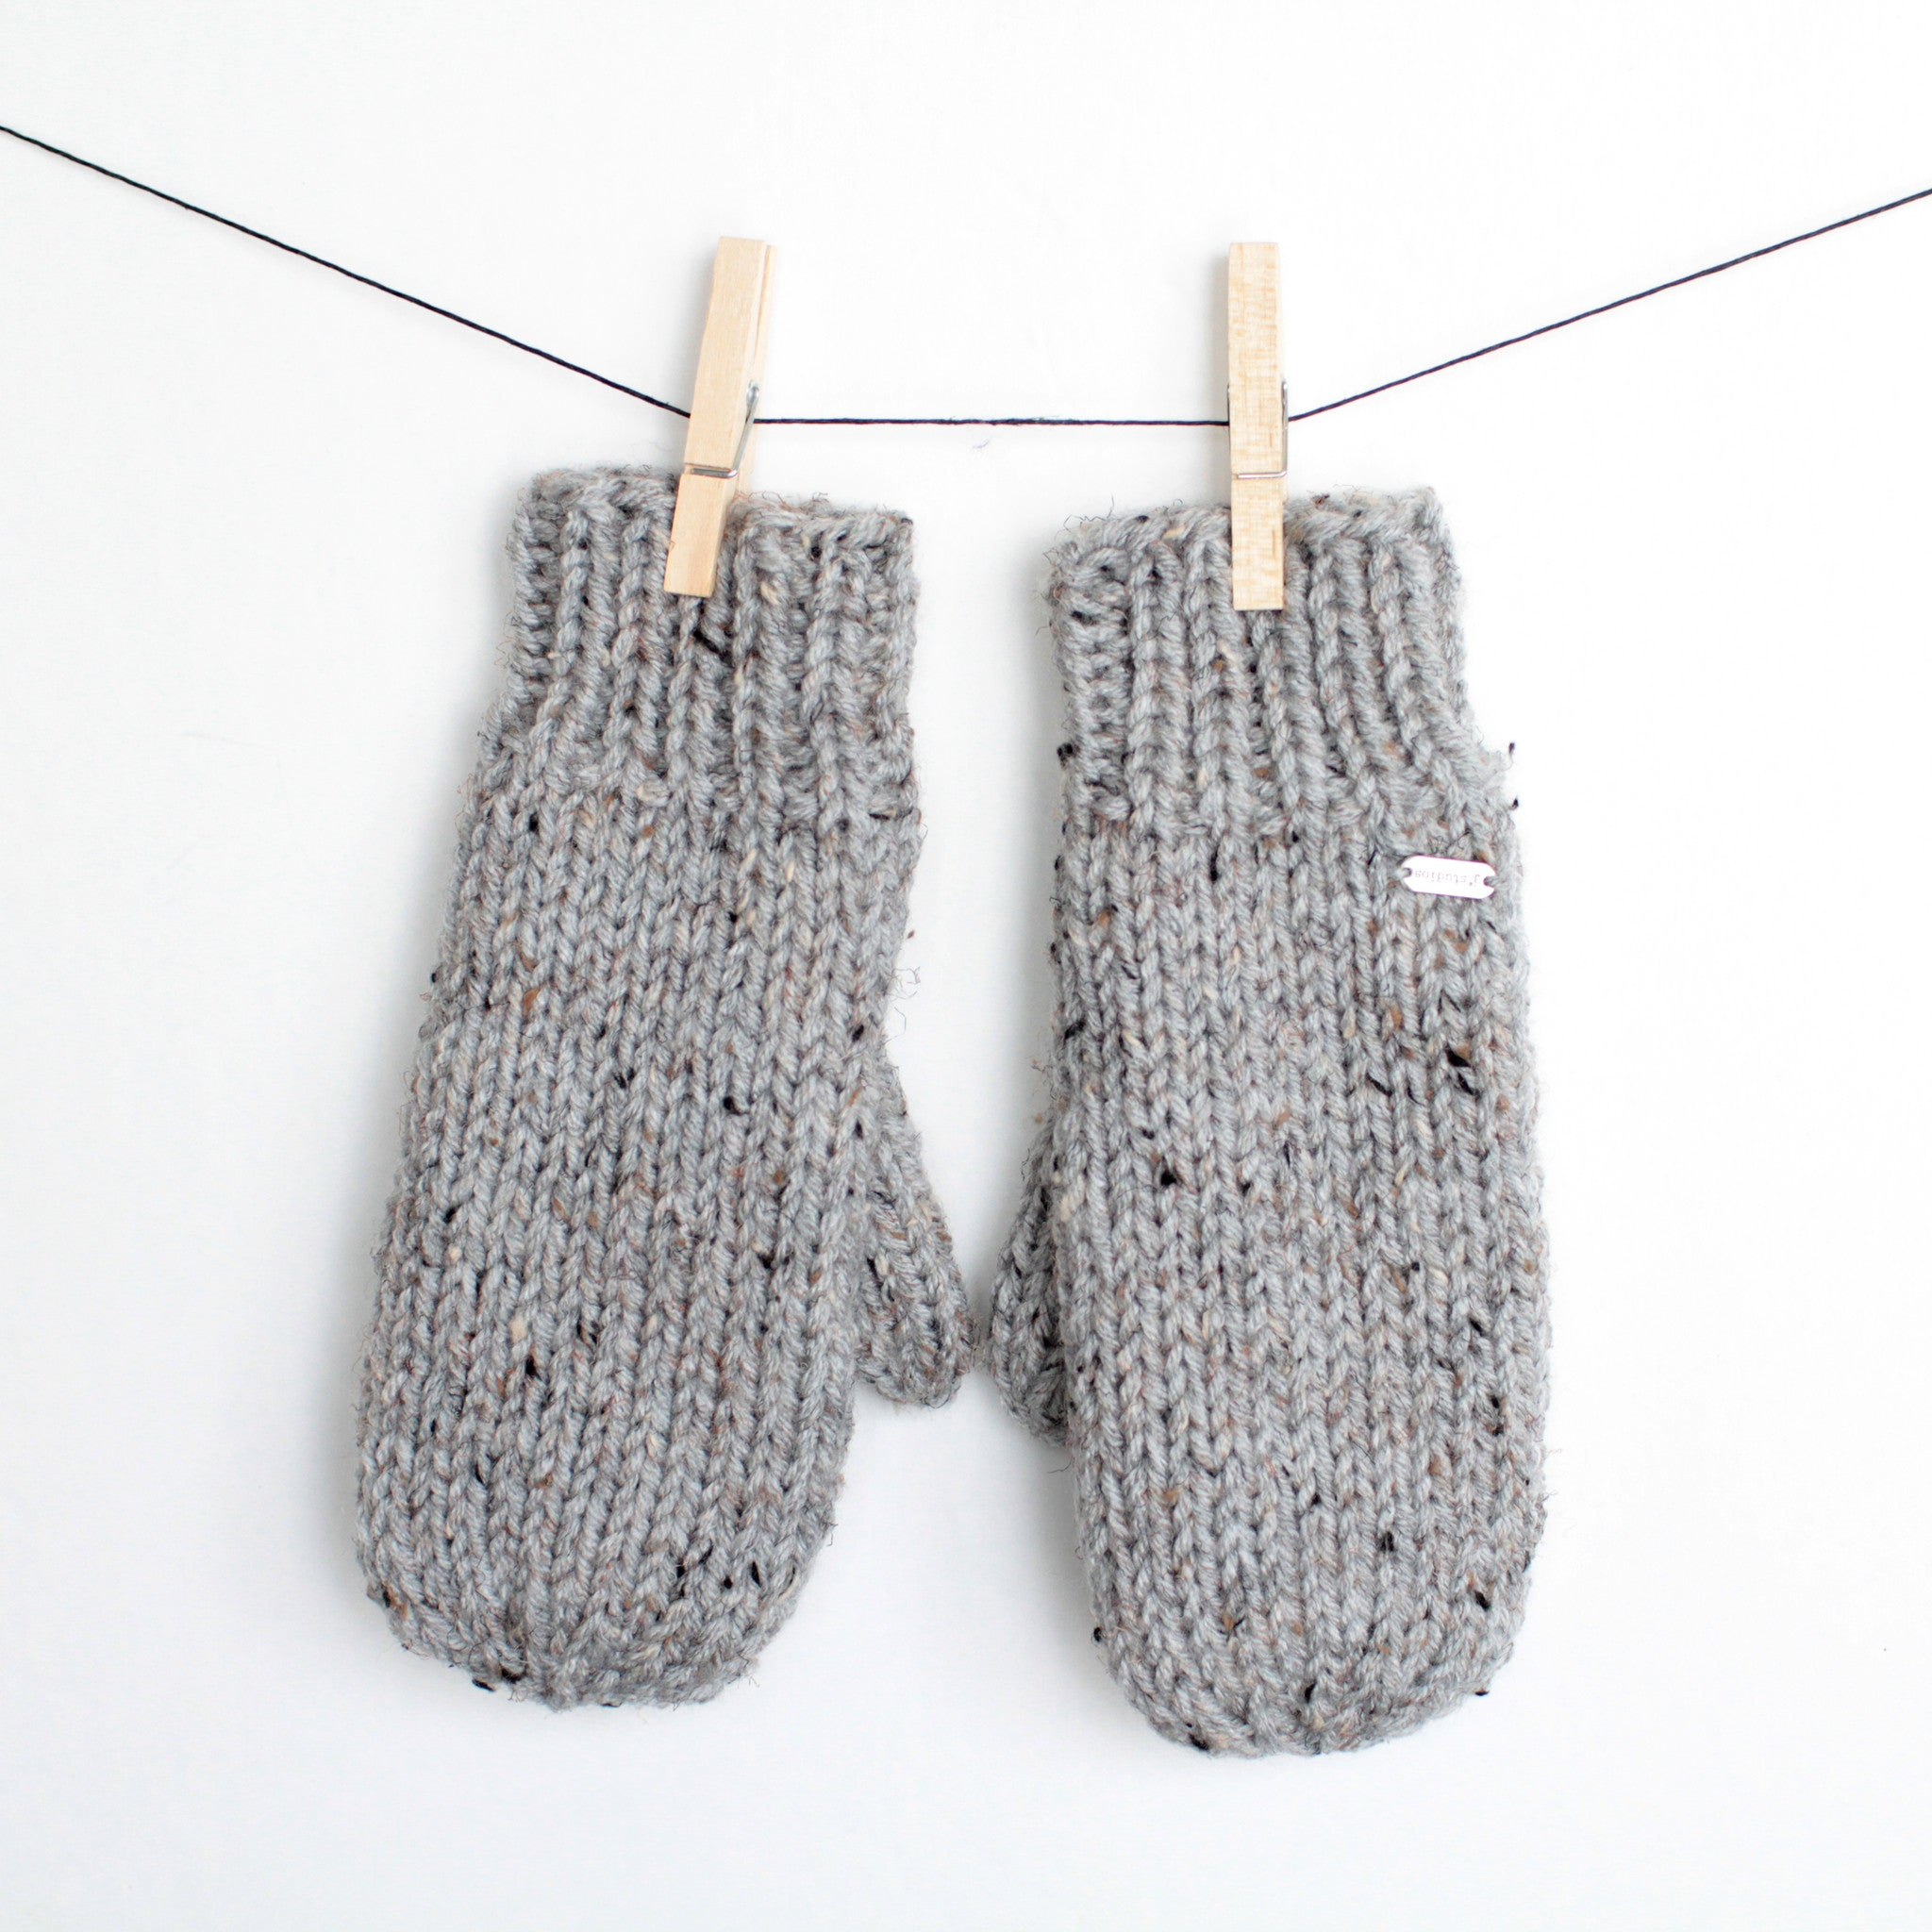 Knit Speckled Gray Mittens with Fleece Lining